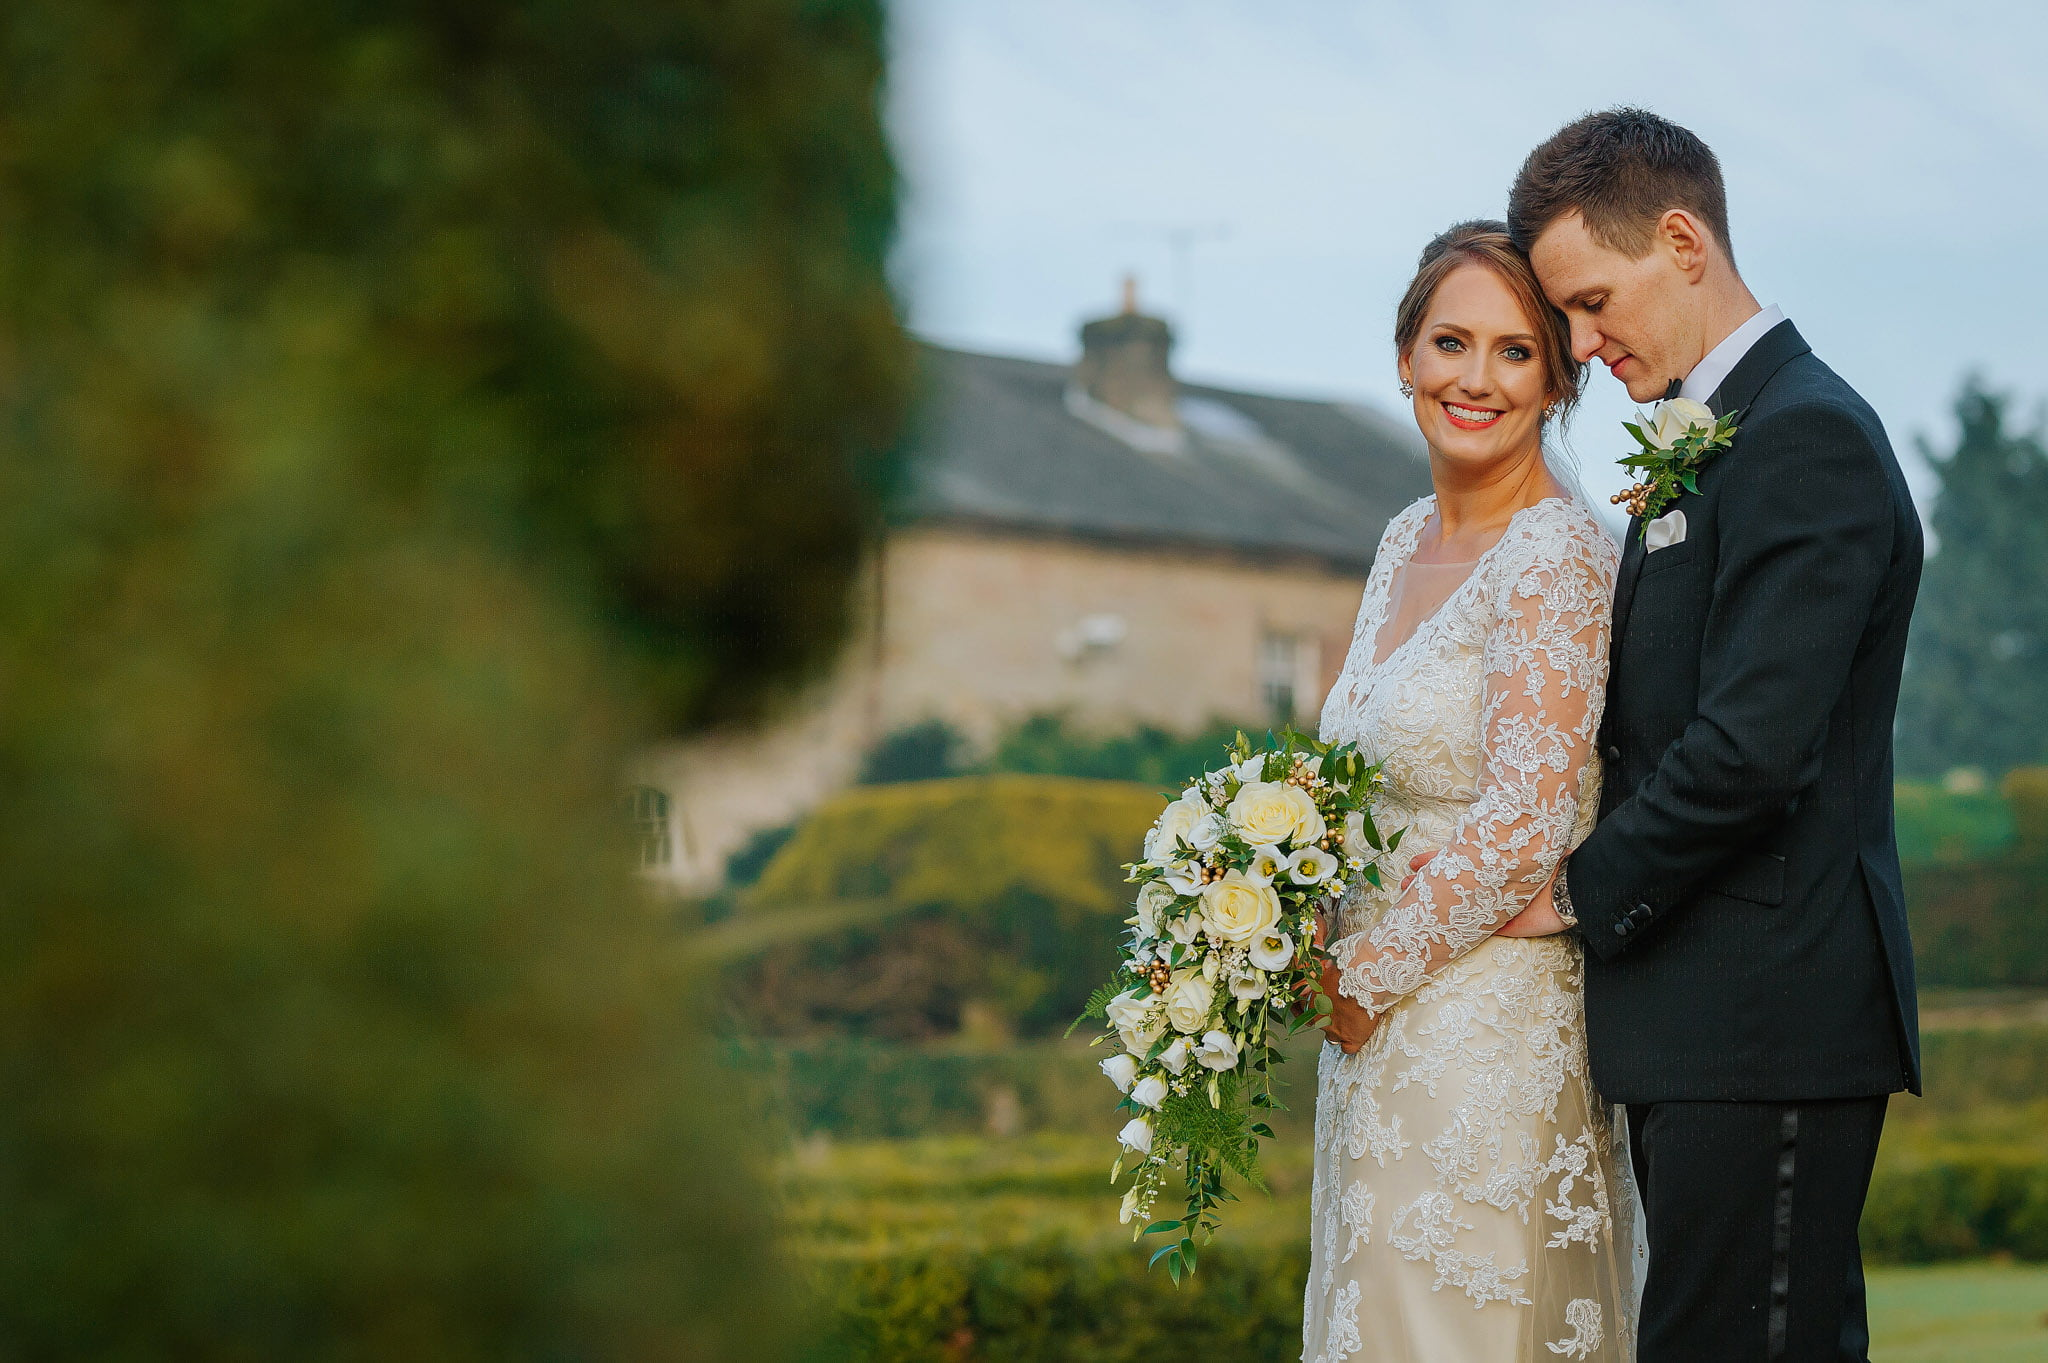 coombe abbey wedding coventry 88 - Coombe Abbey wedding in Coventry, Warwickshire - Sam + Matt